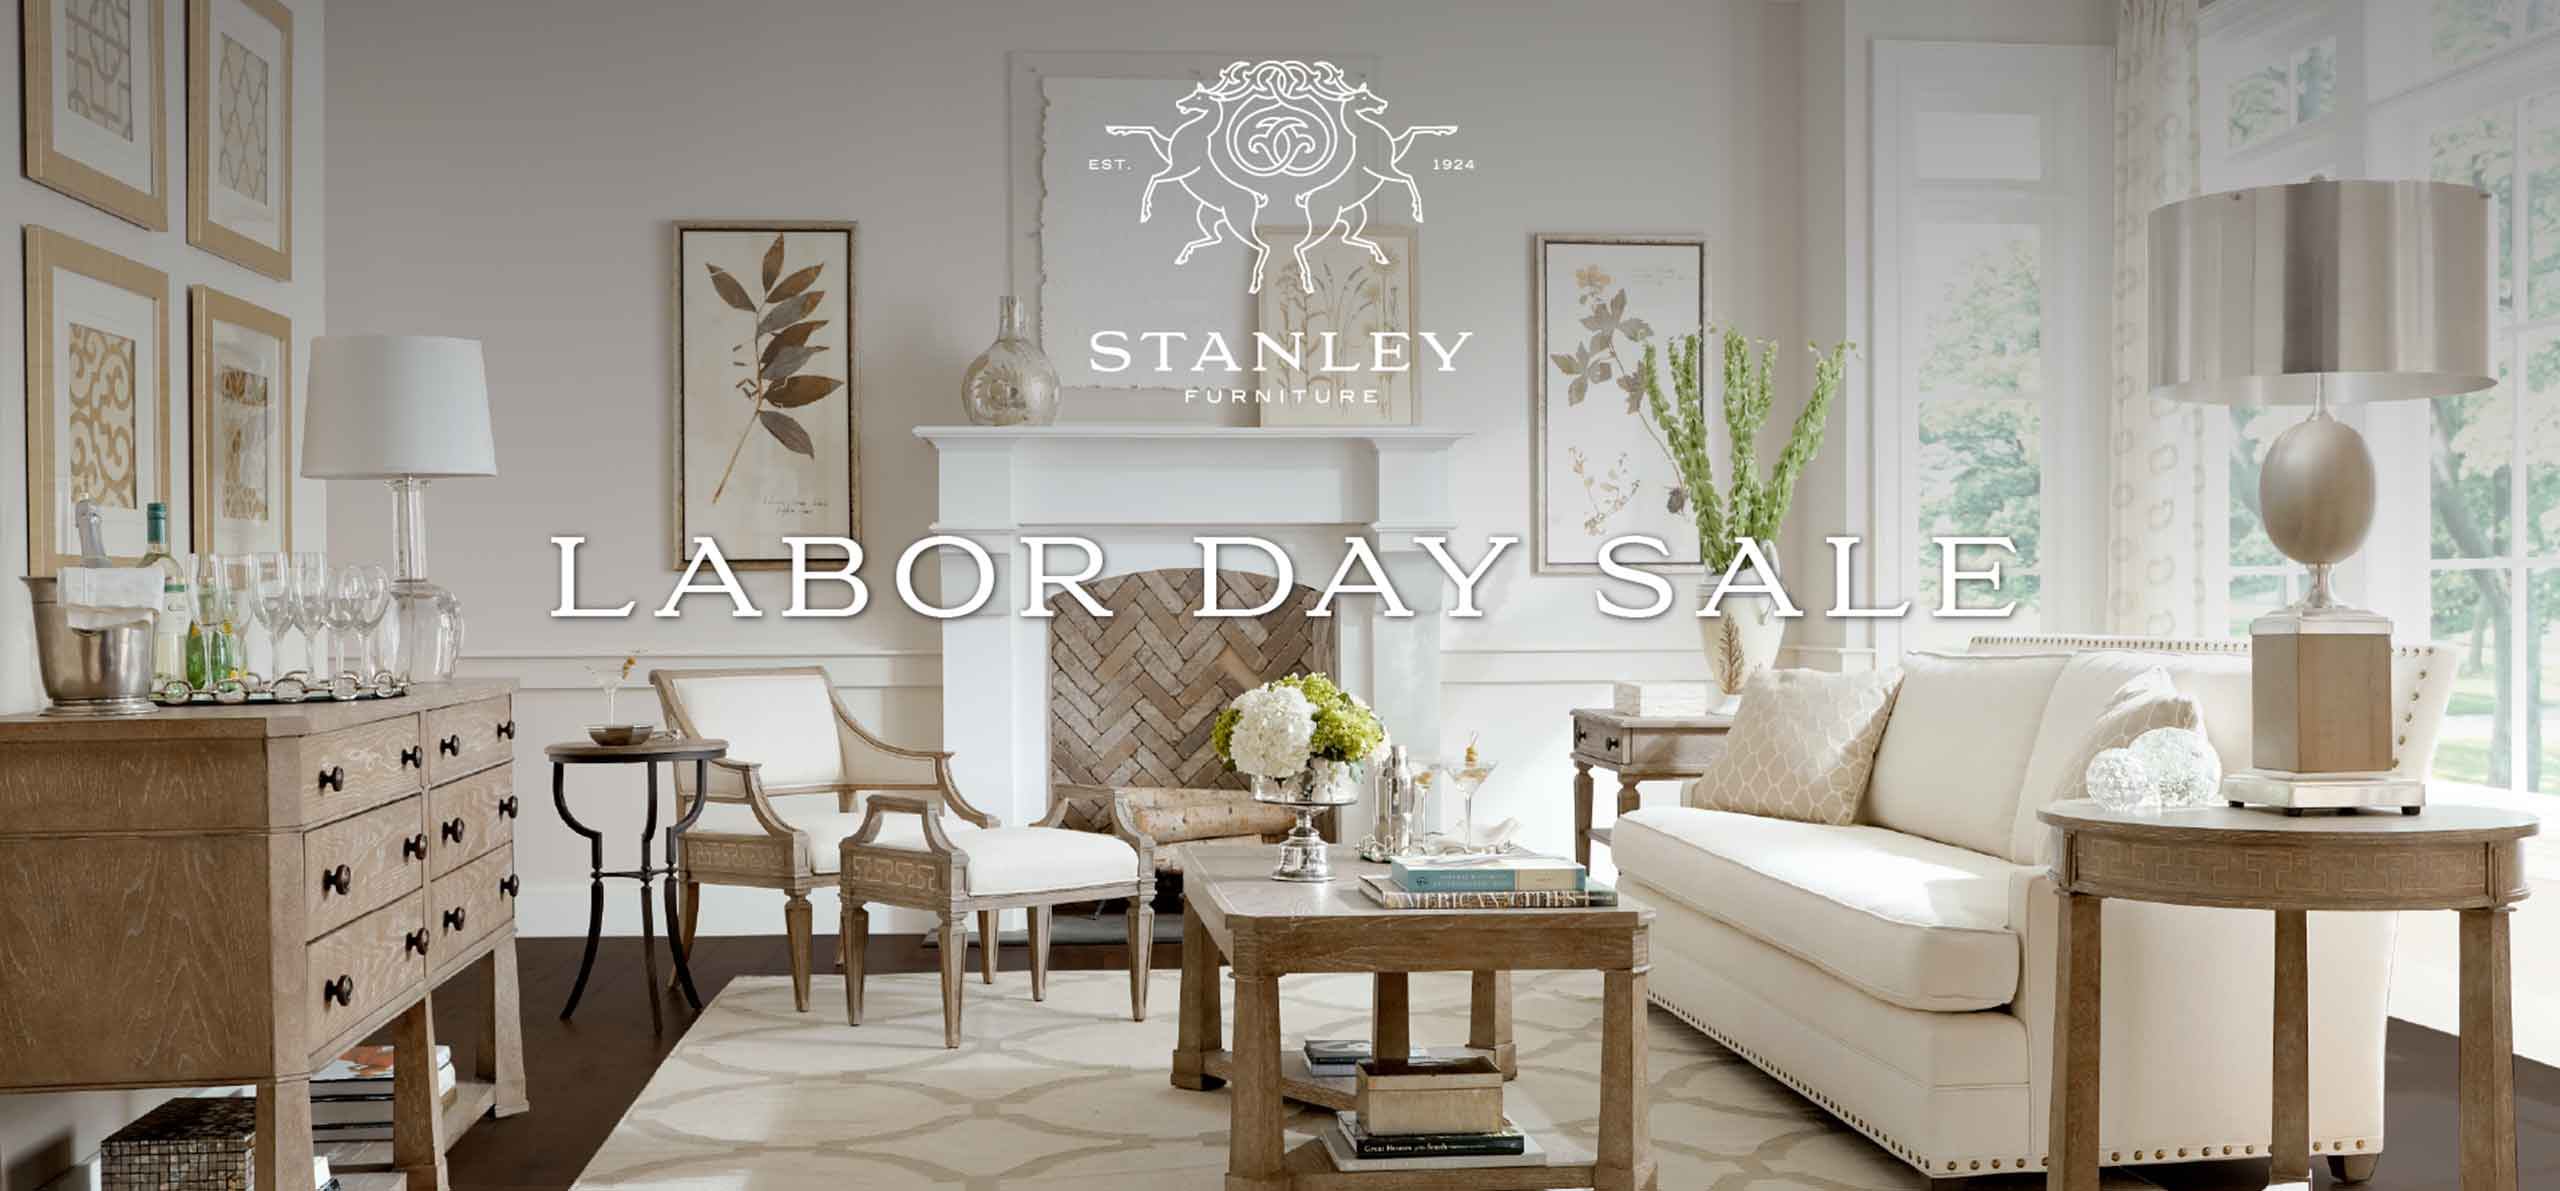 Stanley Furniture Labor Day Sale